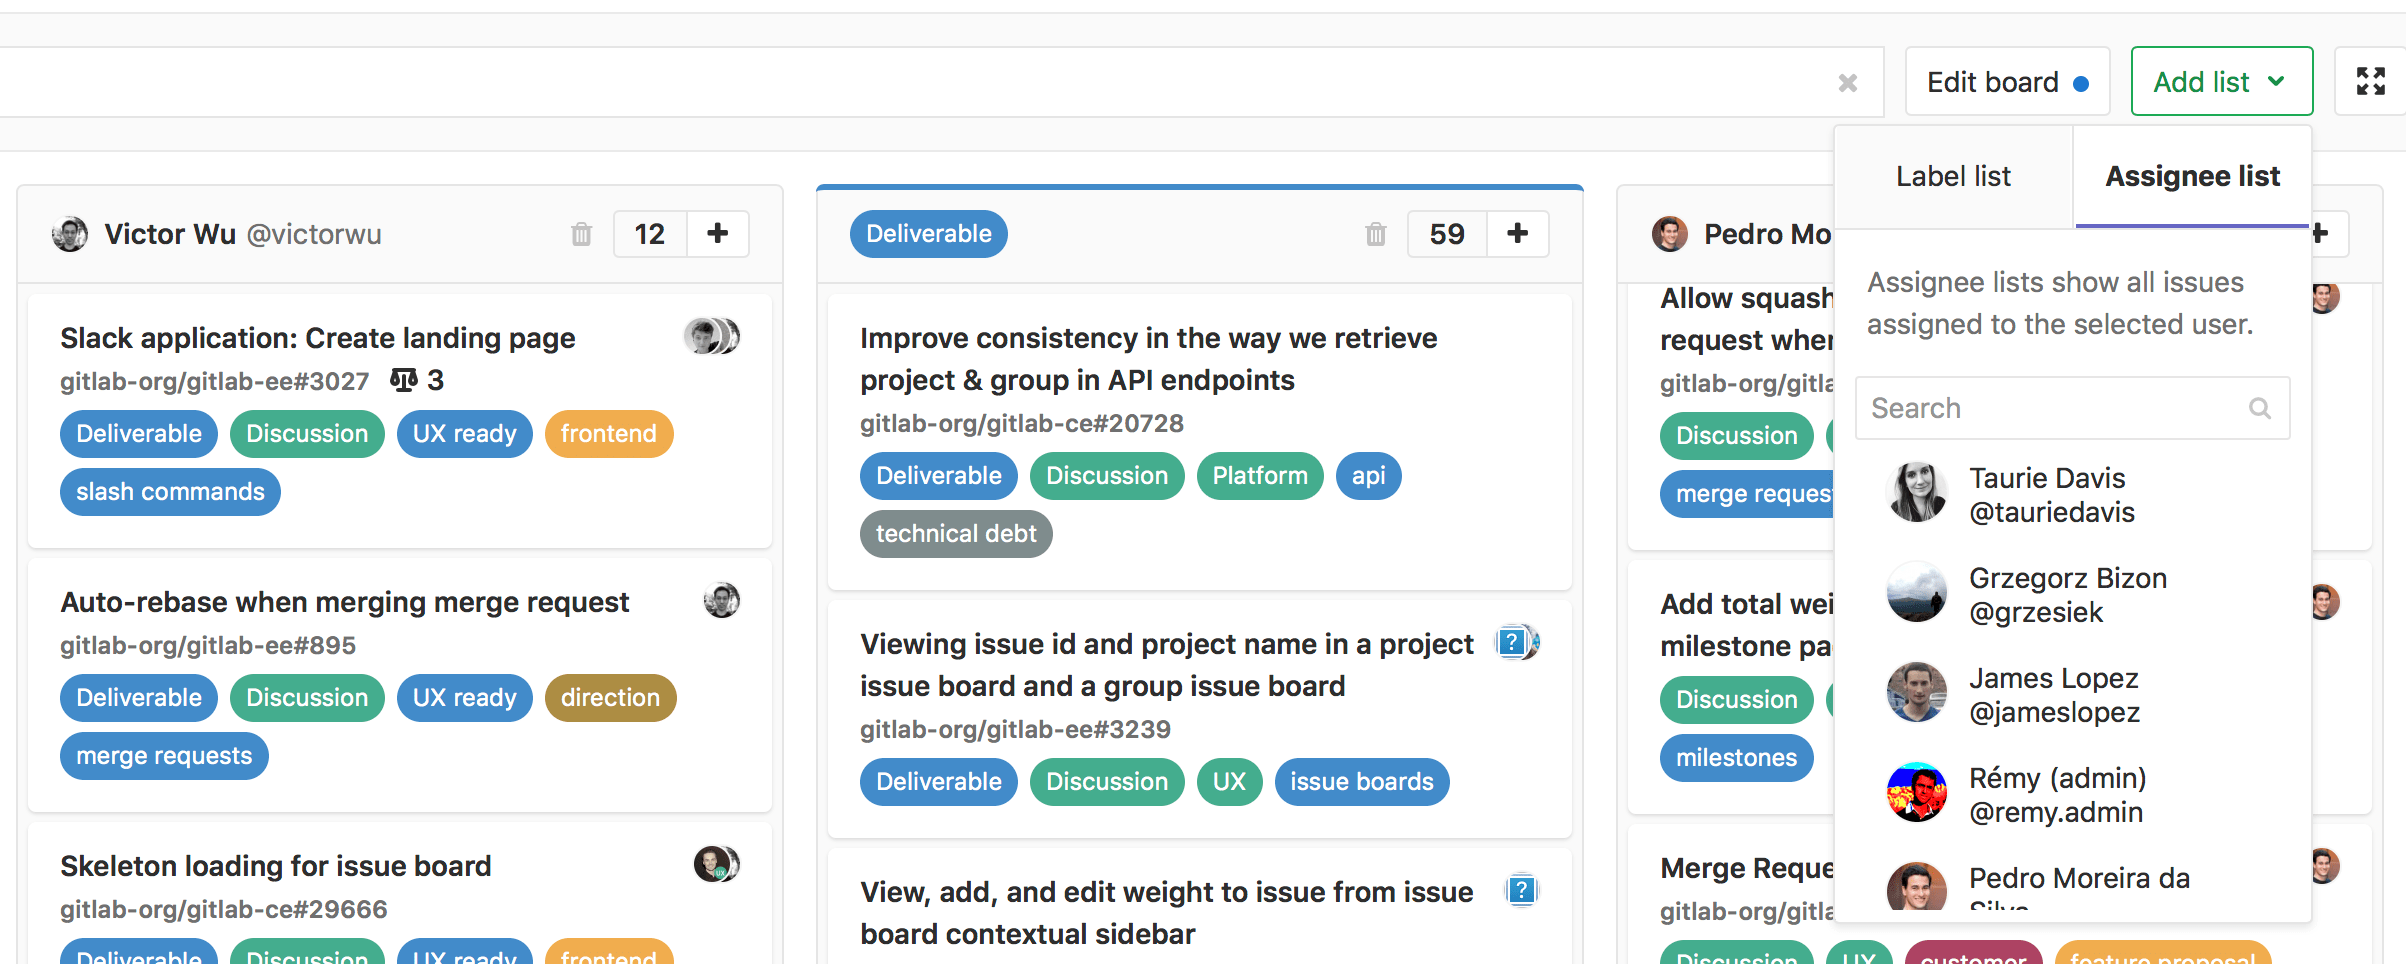 doc/user/project/img/assignee_lists.png